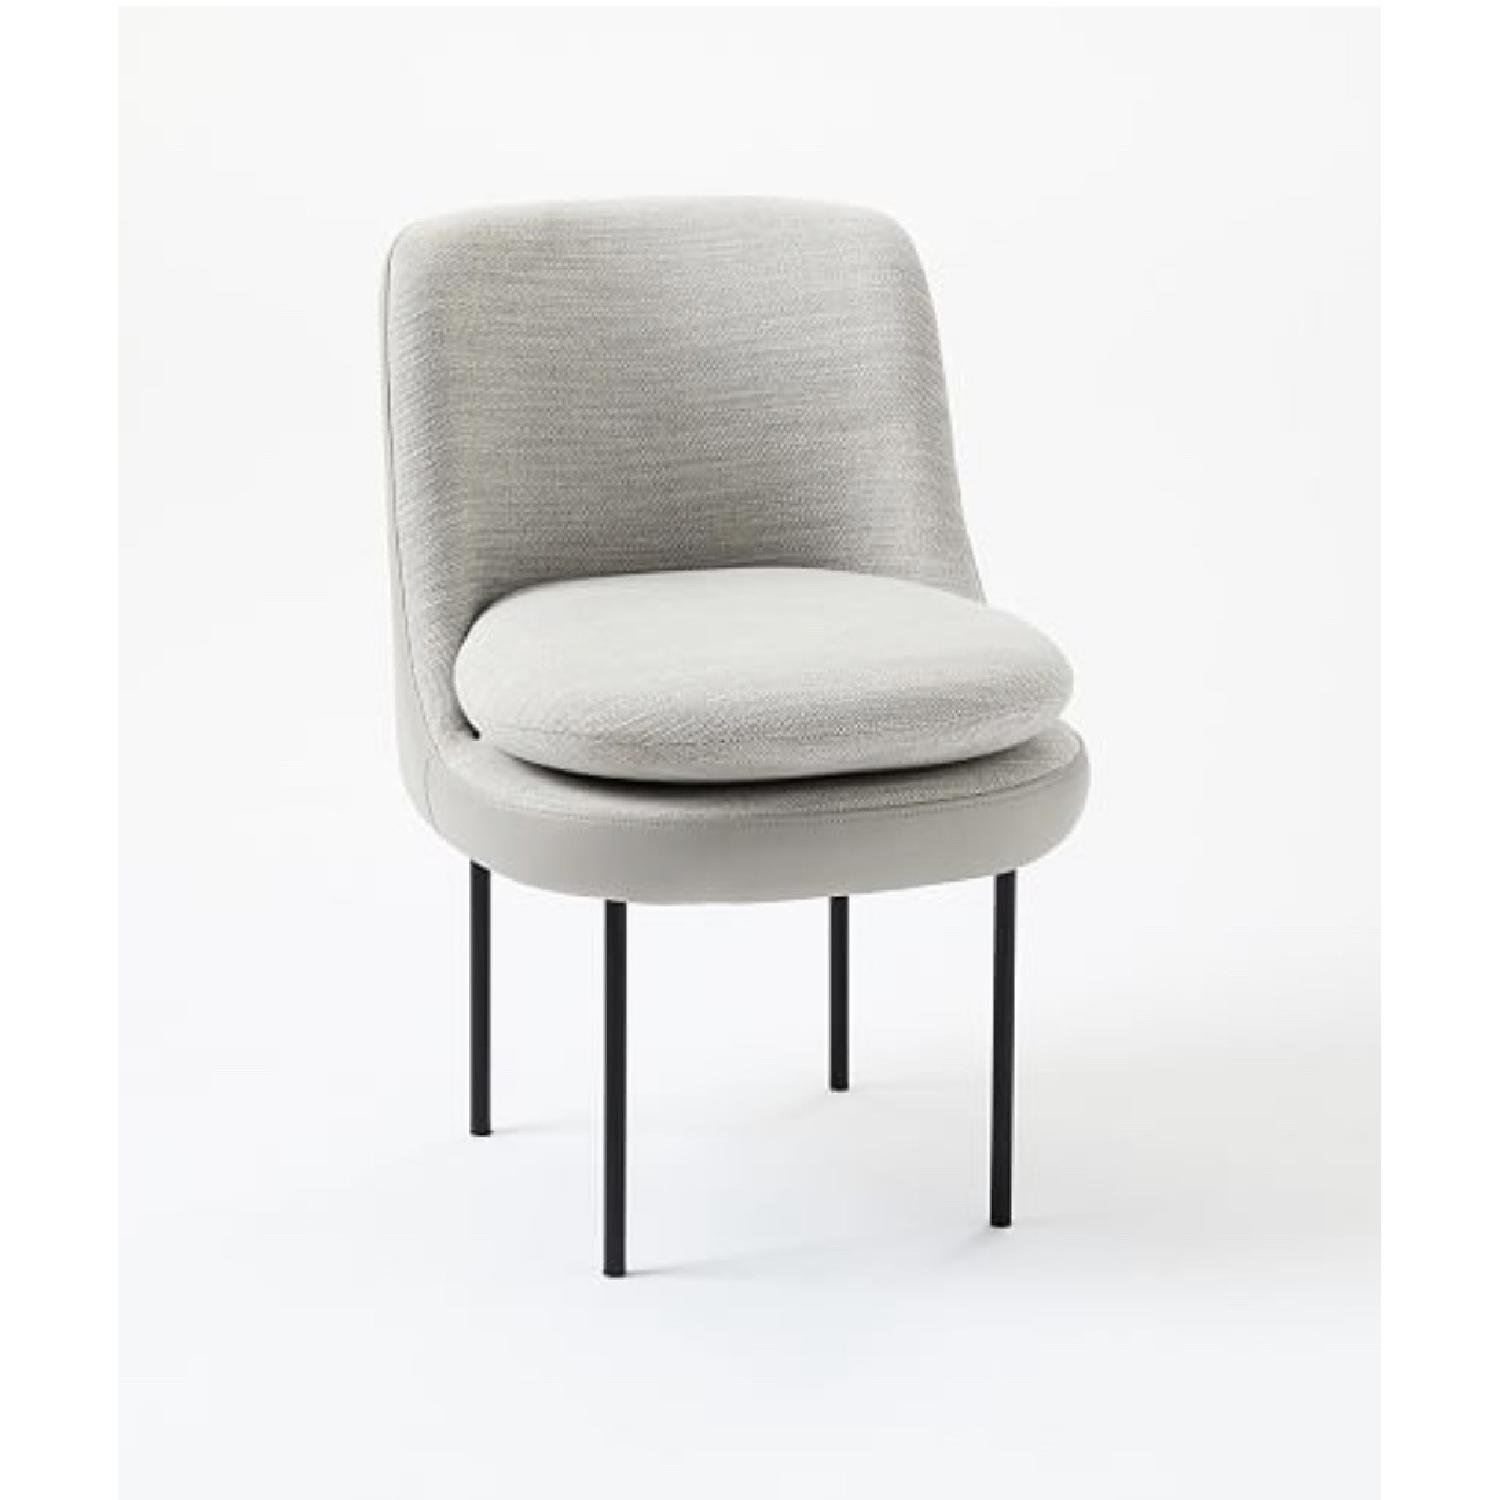 West Elm Modern Curved Leather Back Dining Chair - image-2